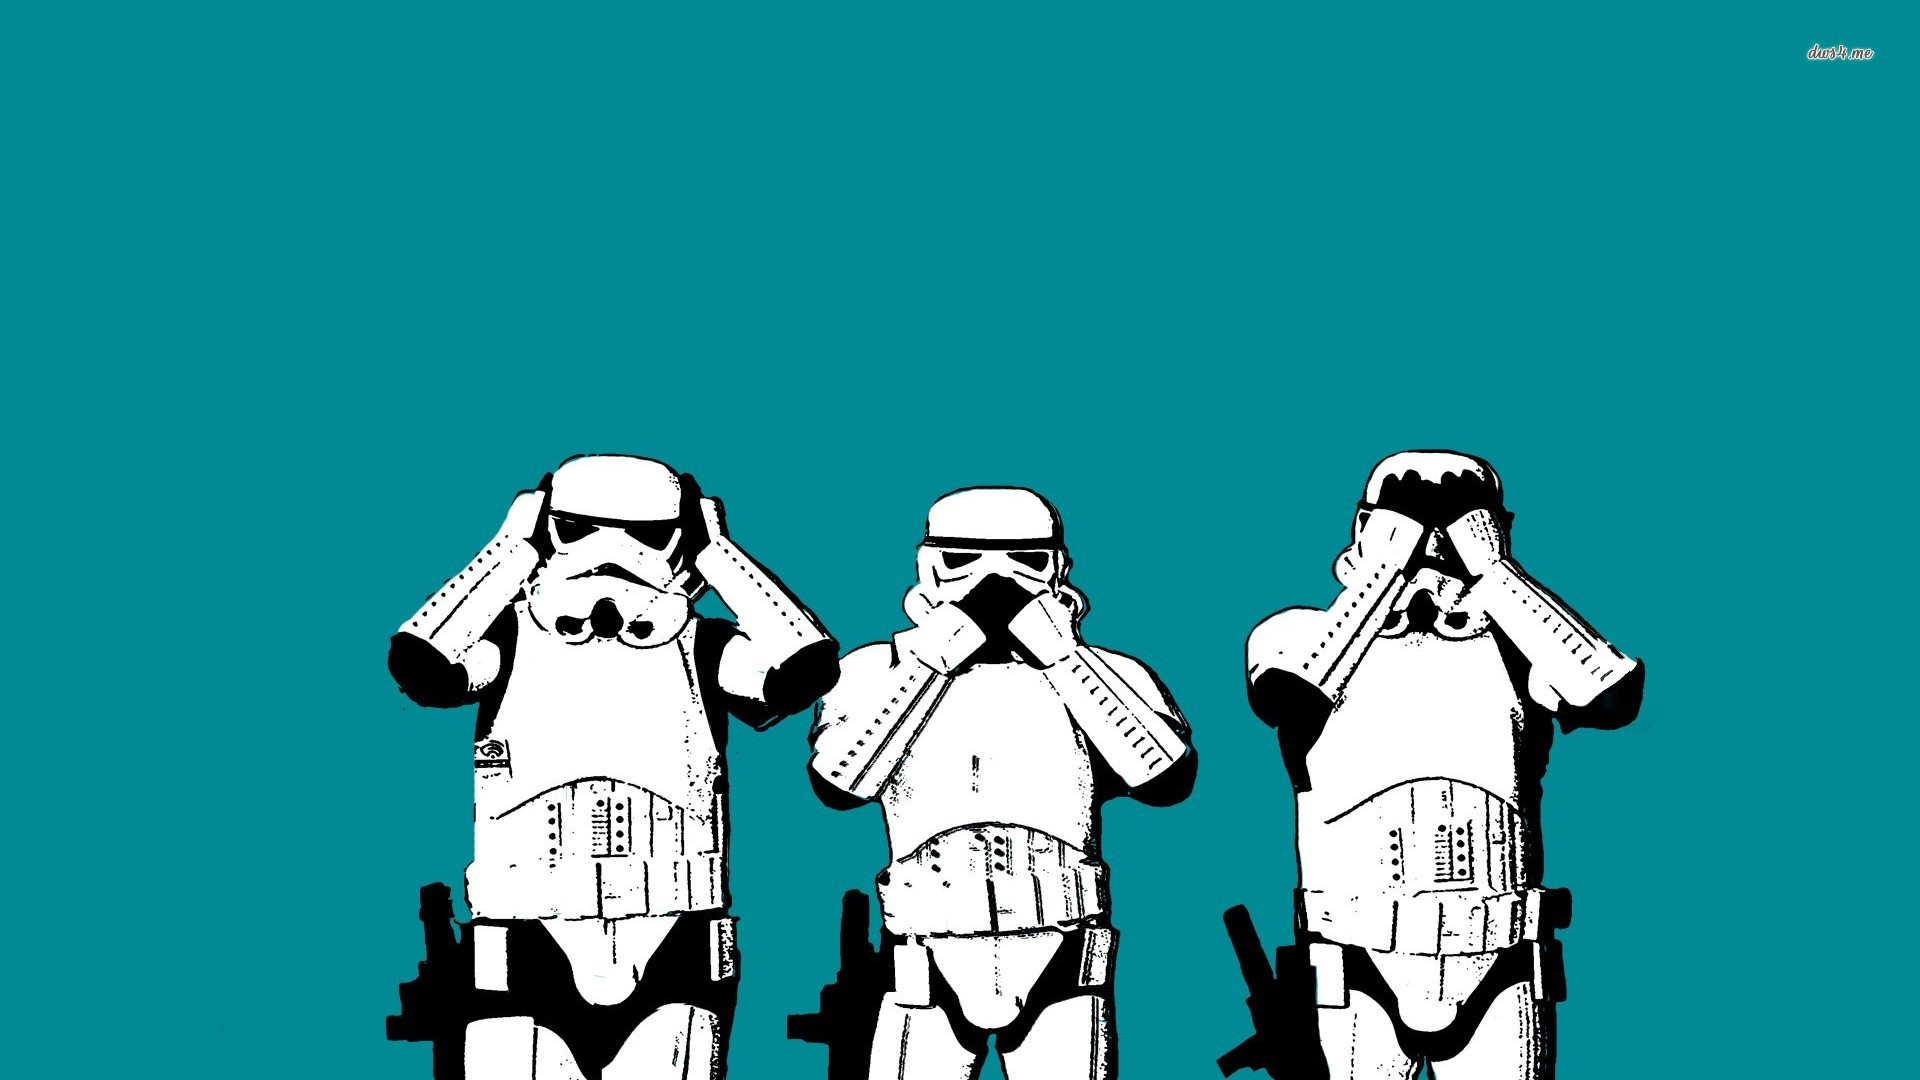 gallery for stormtrooper art wallpaper